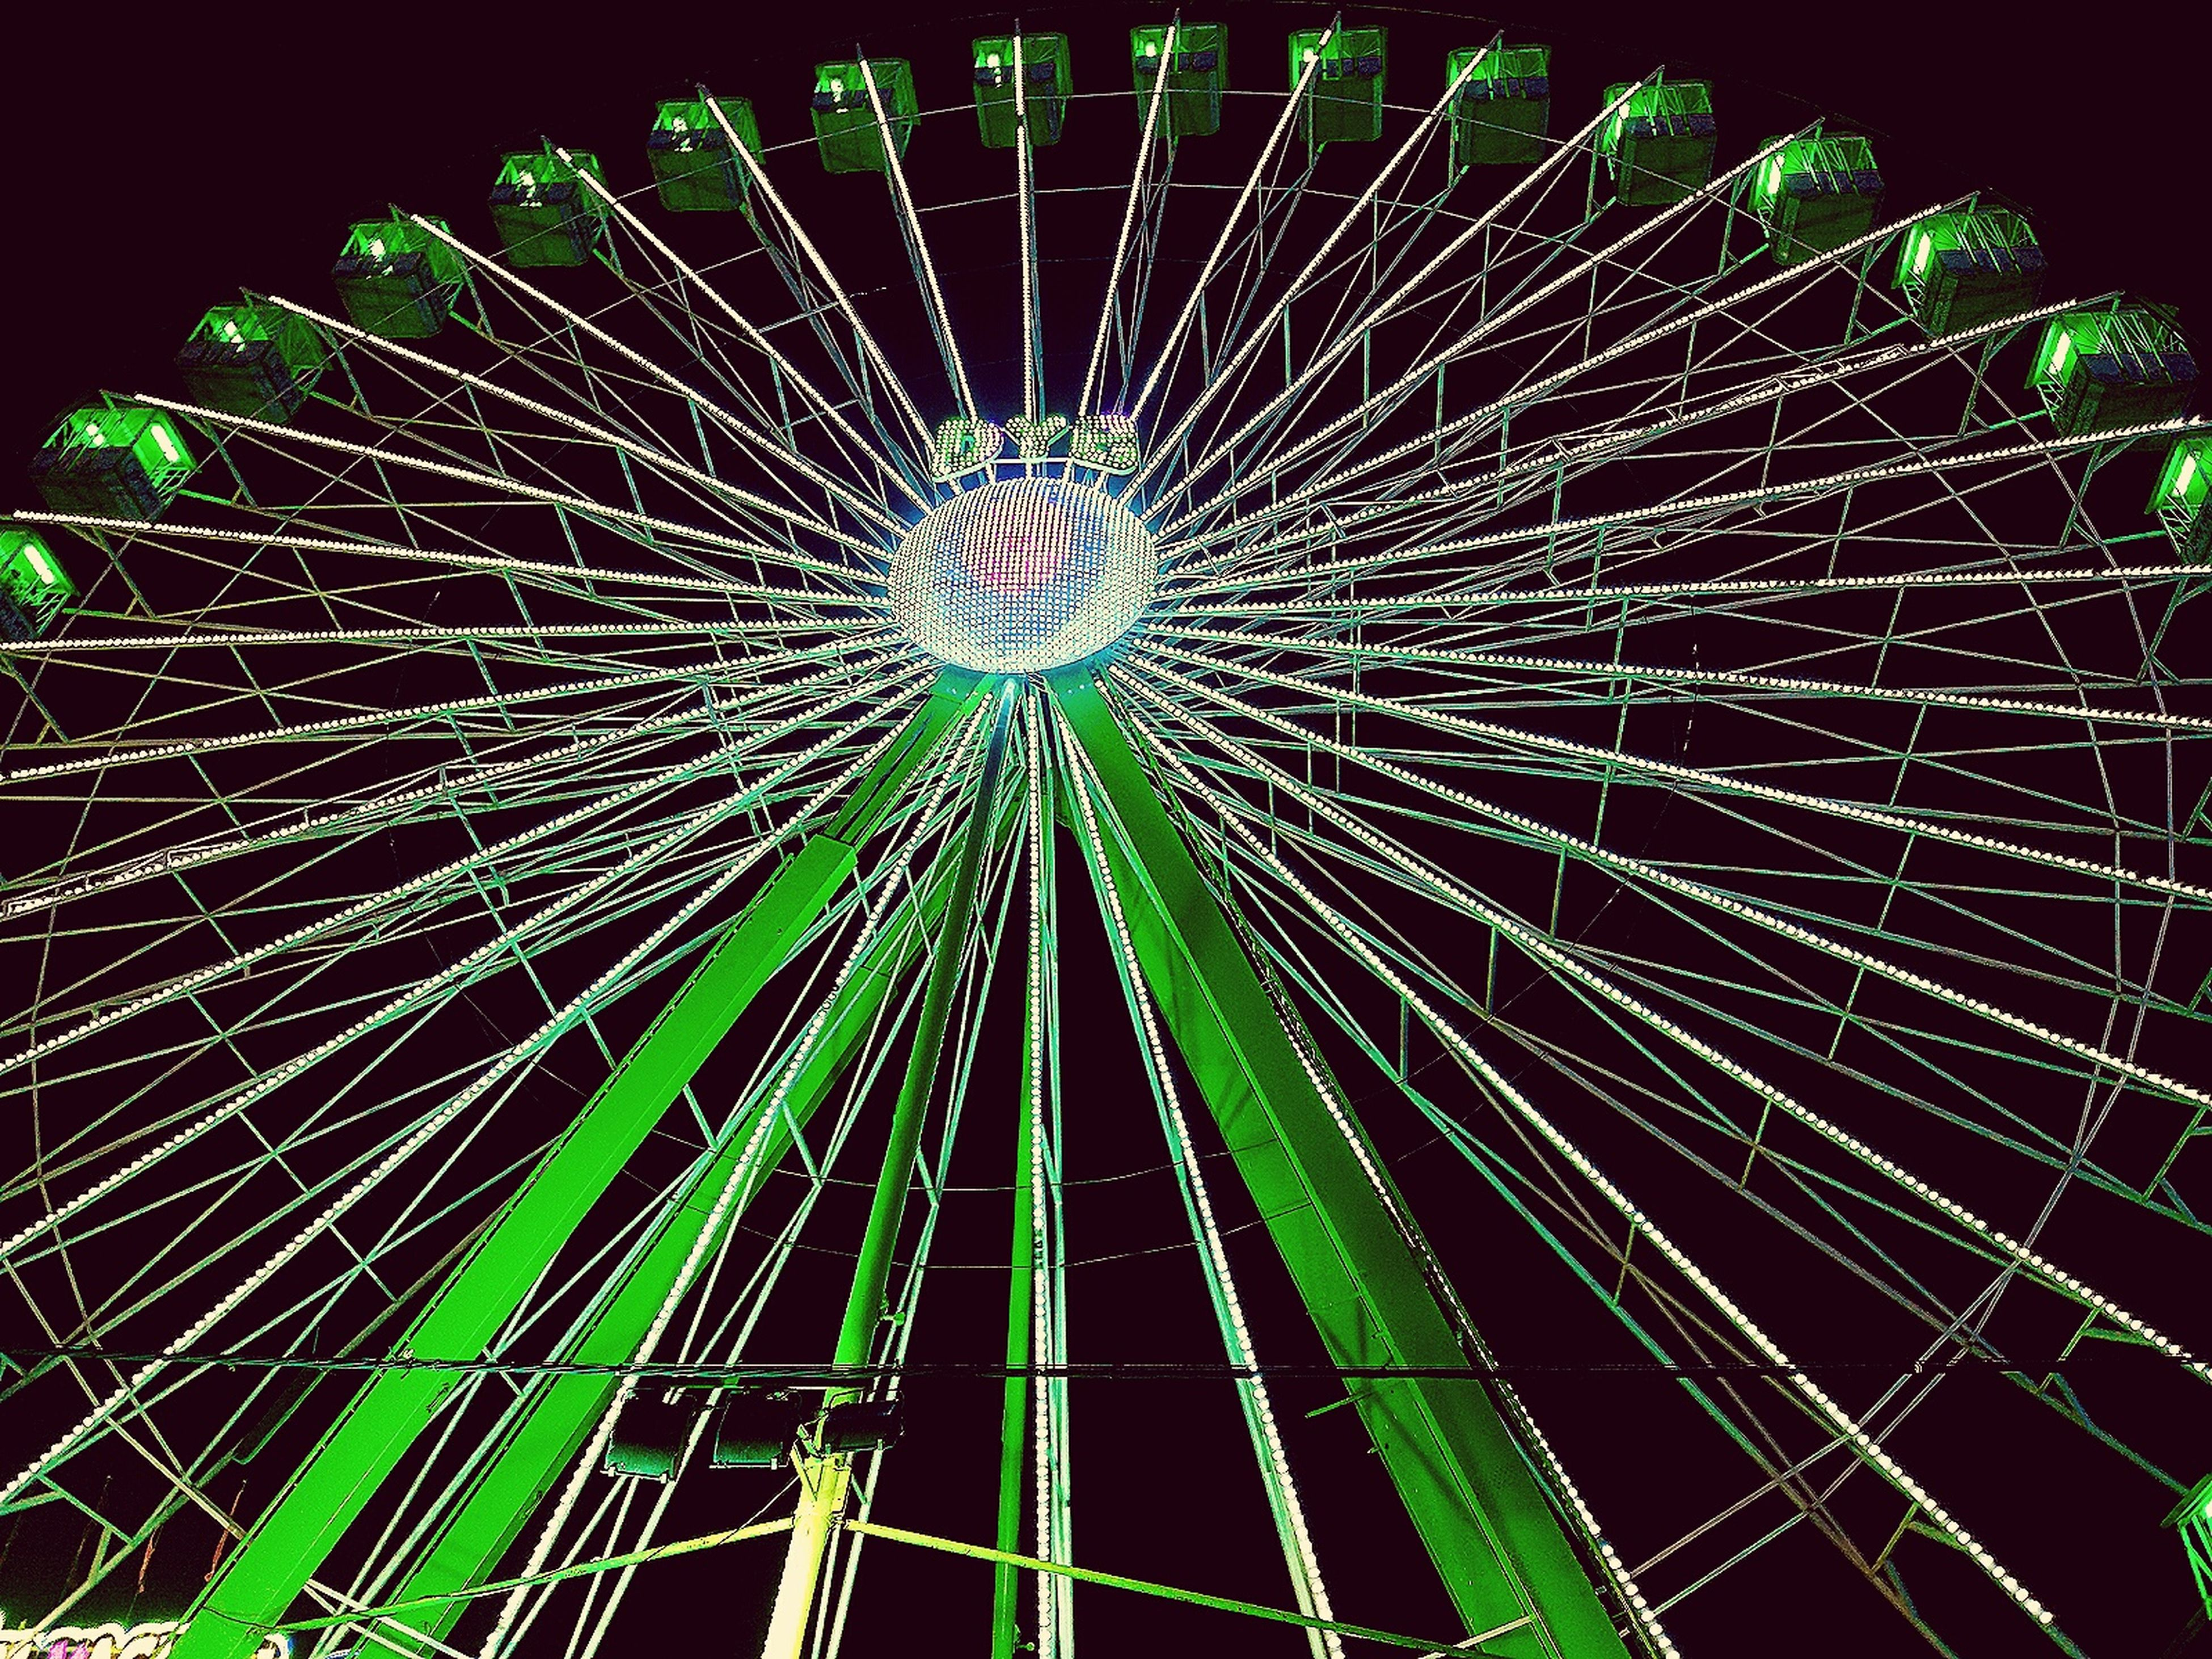 low angle view, night, no people, illuminated, green color, indoors, close-up, sky